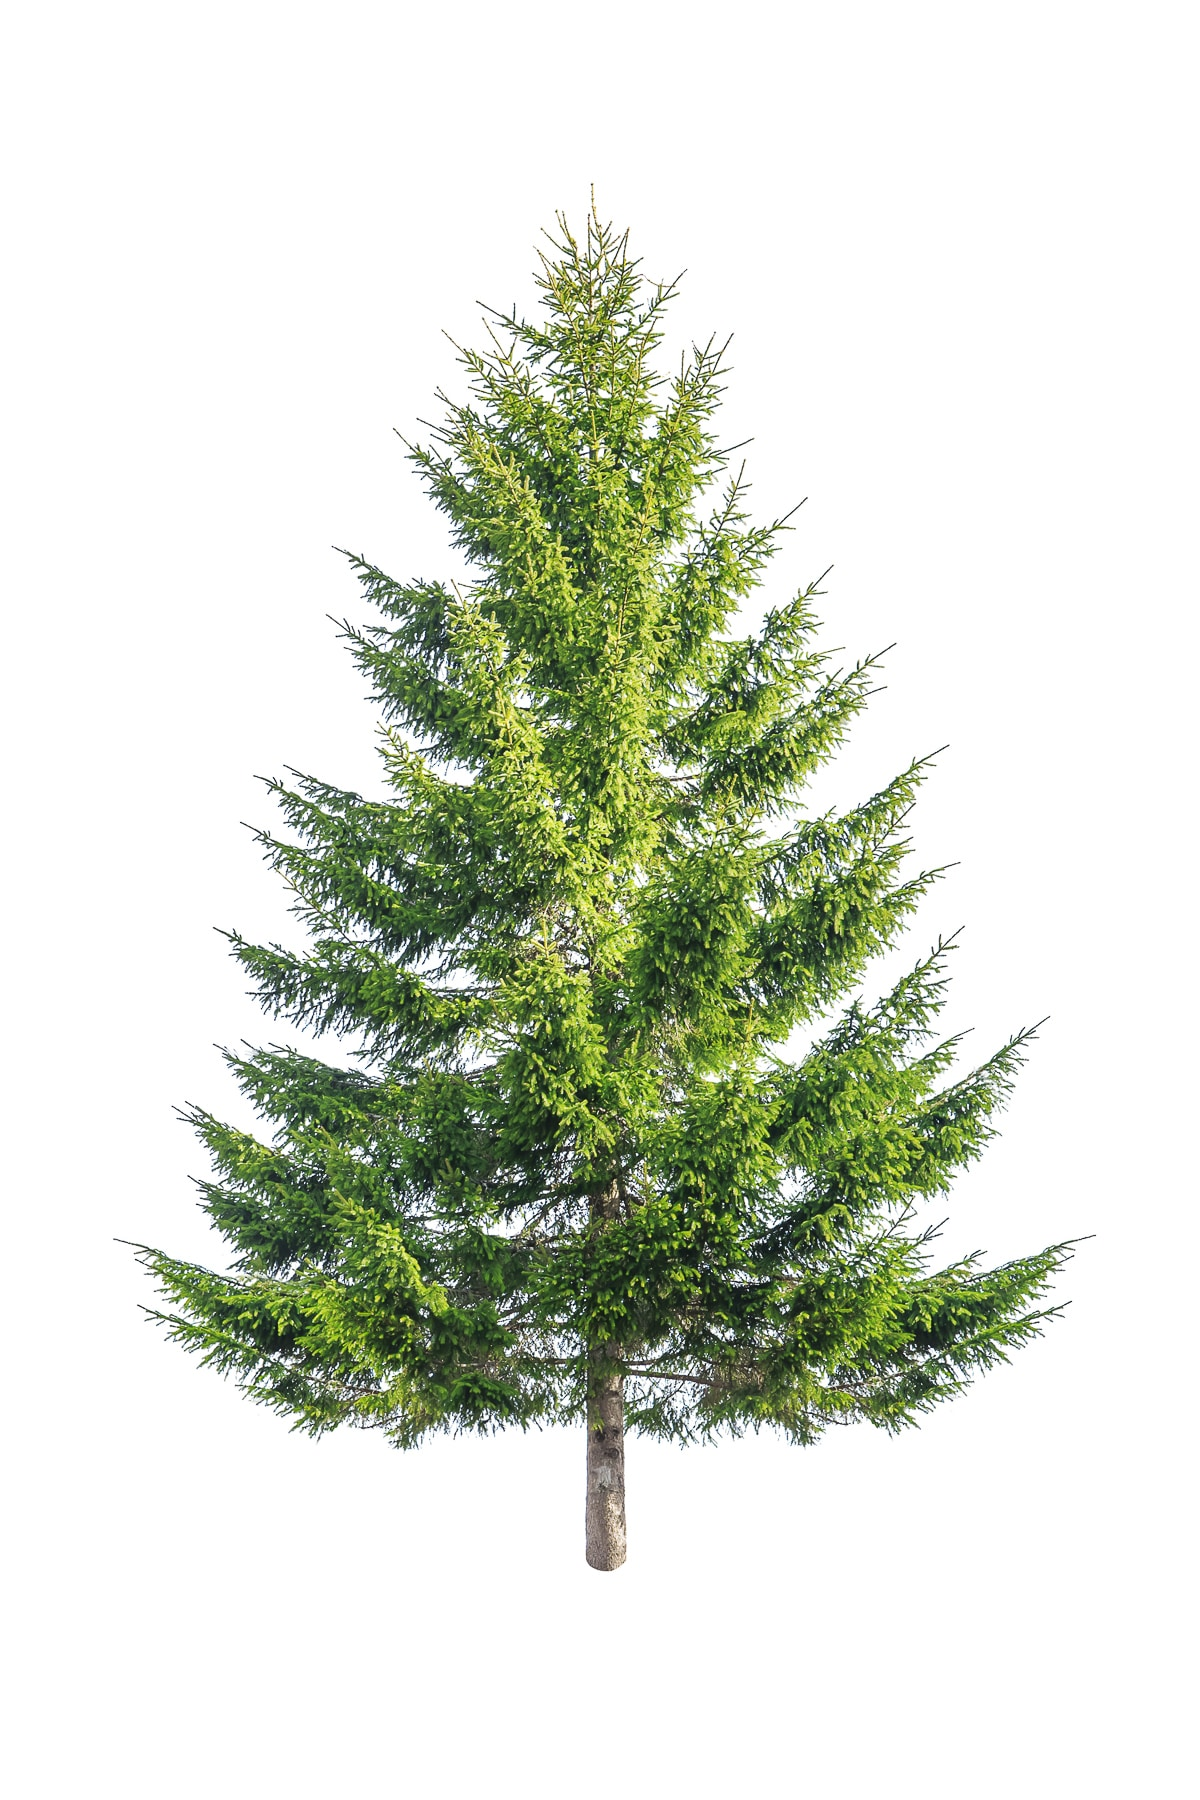 Green fir tree isolate on white background